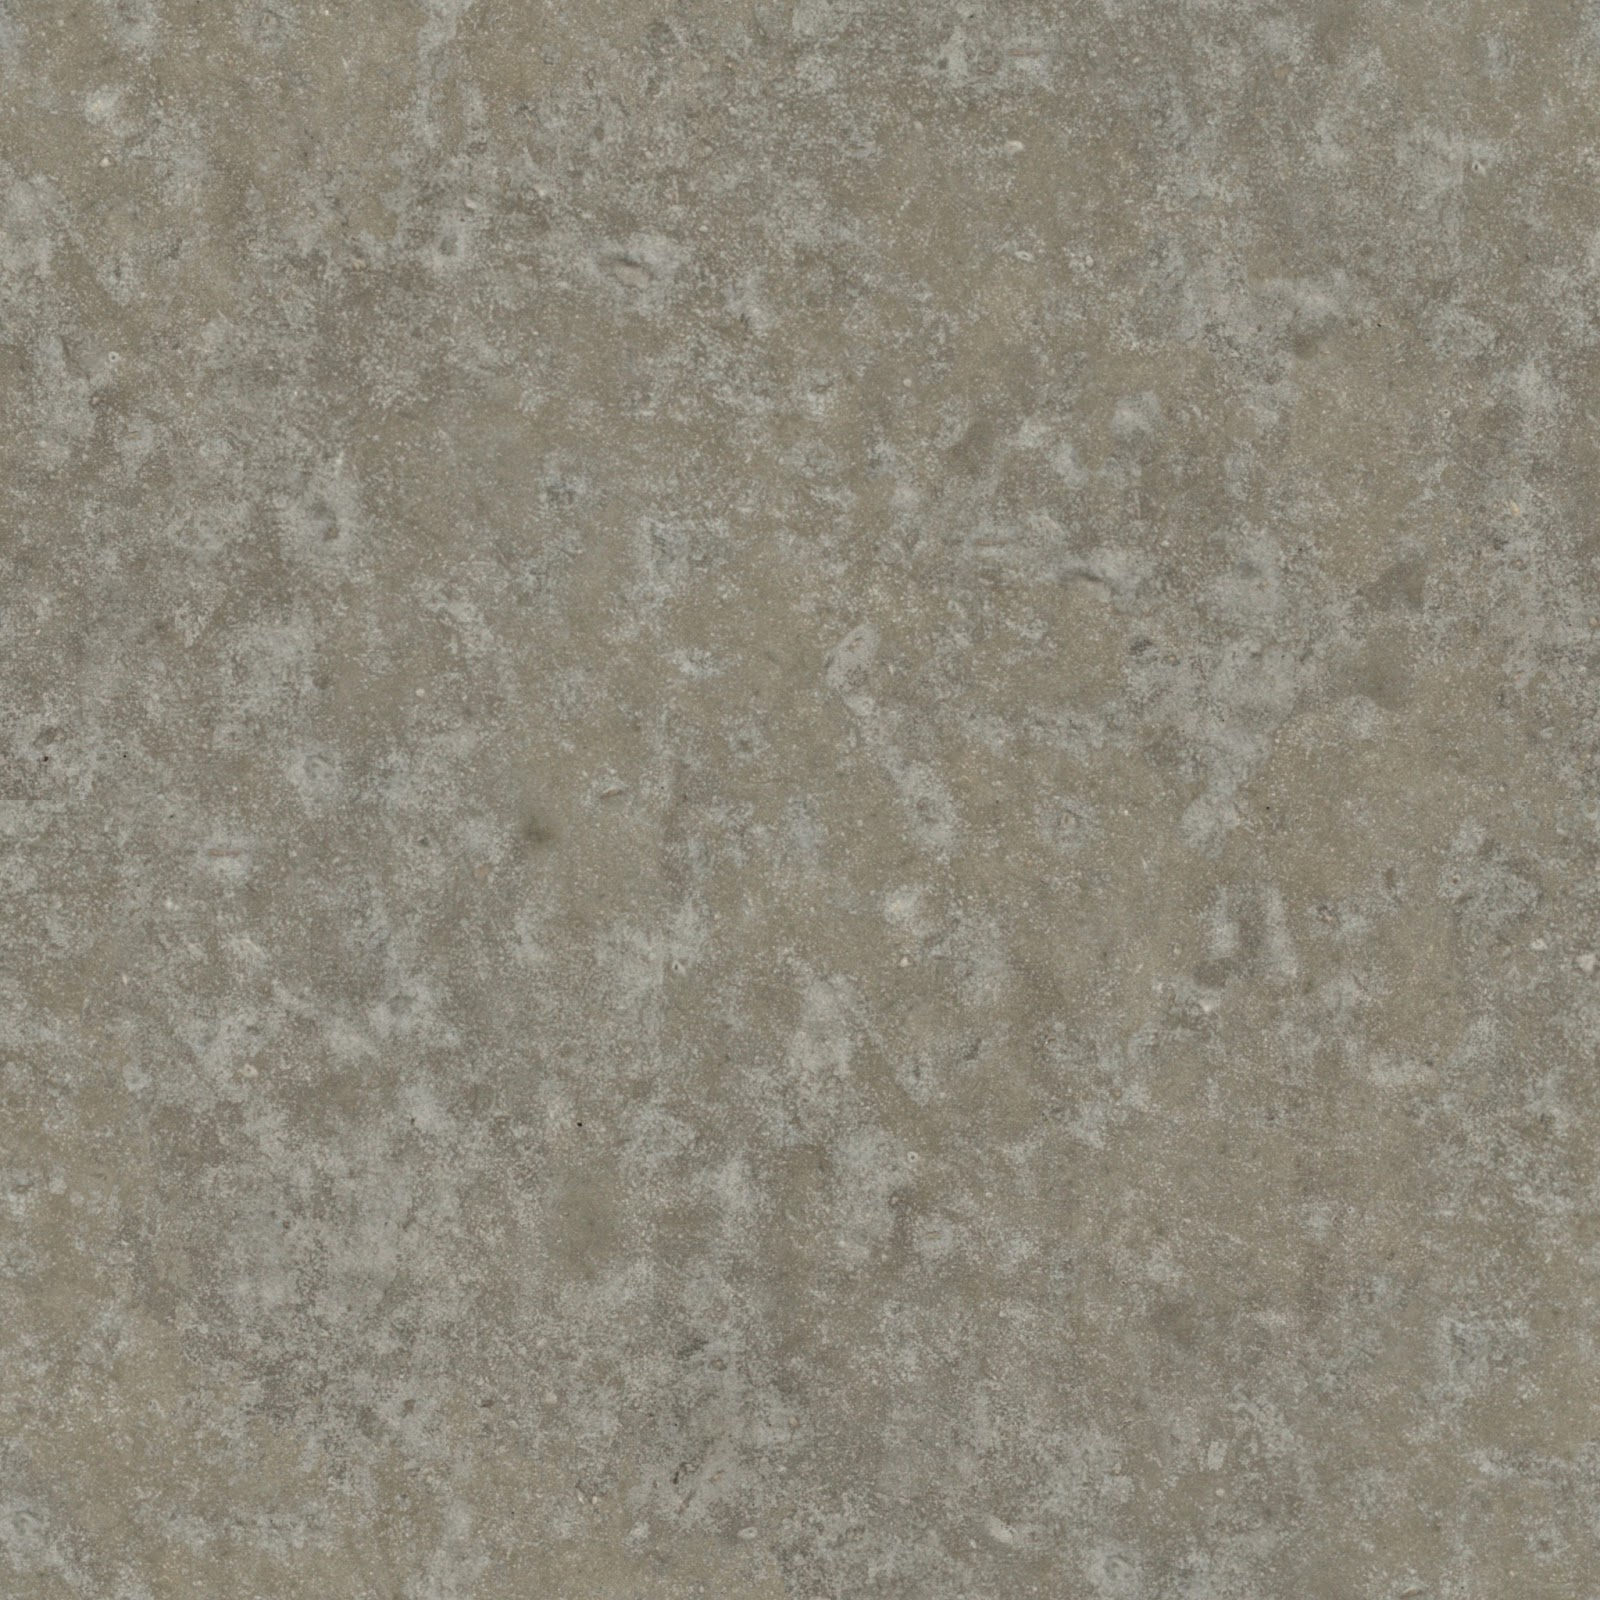 (CONCRETE 25) granite wall grunge pillar seamless texture 2048x2048